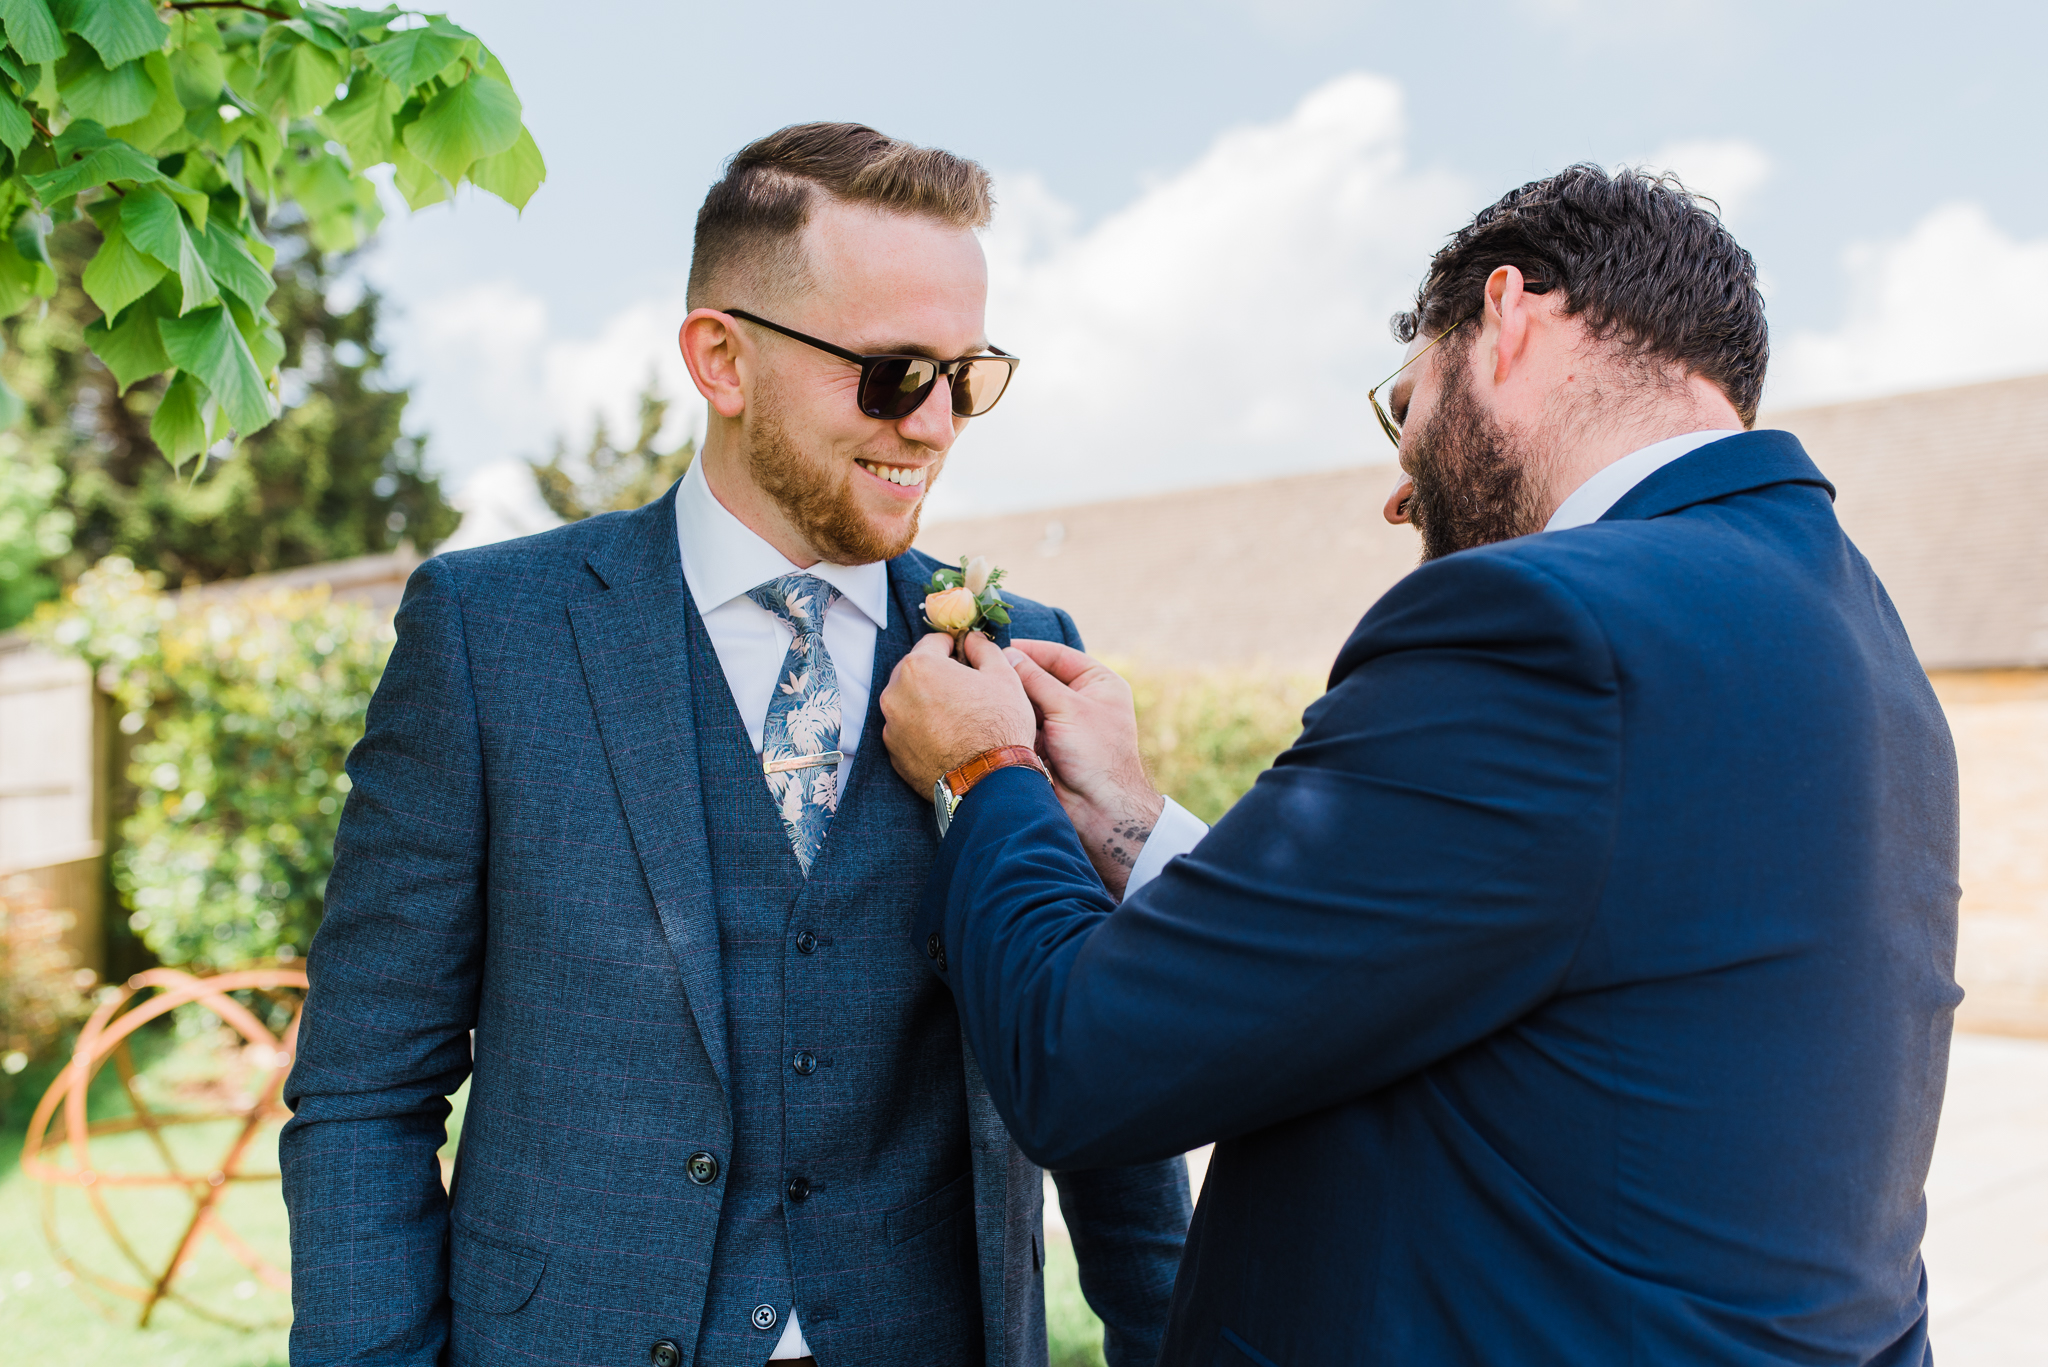 Groom and Best man putting on boutonniere